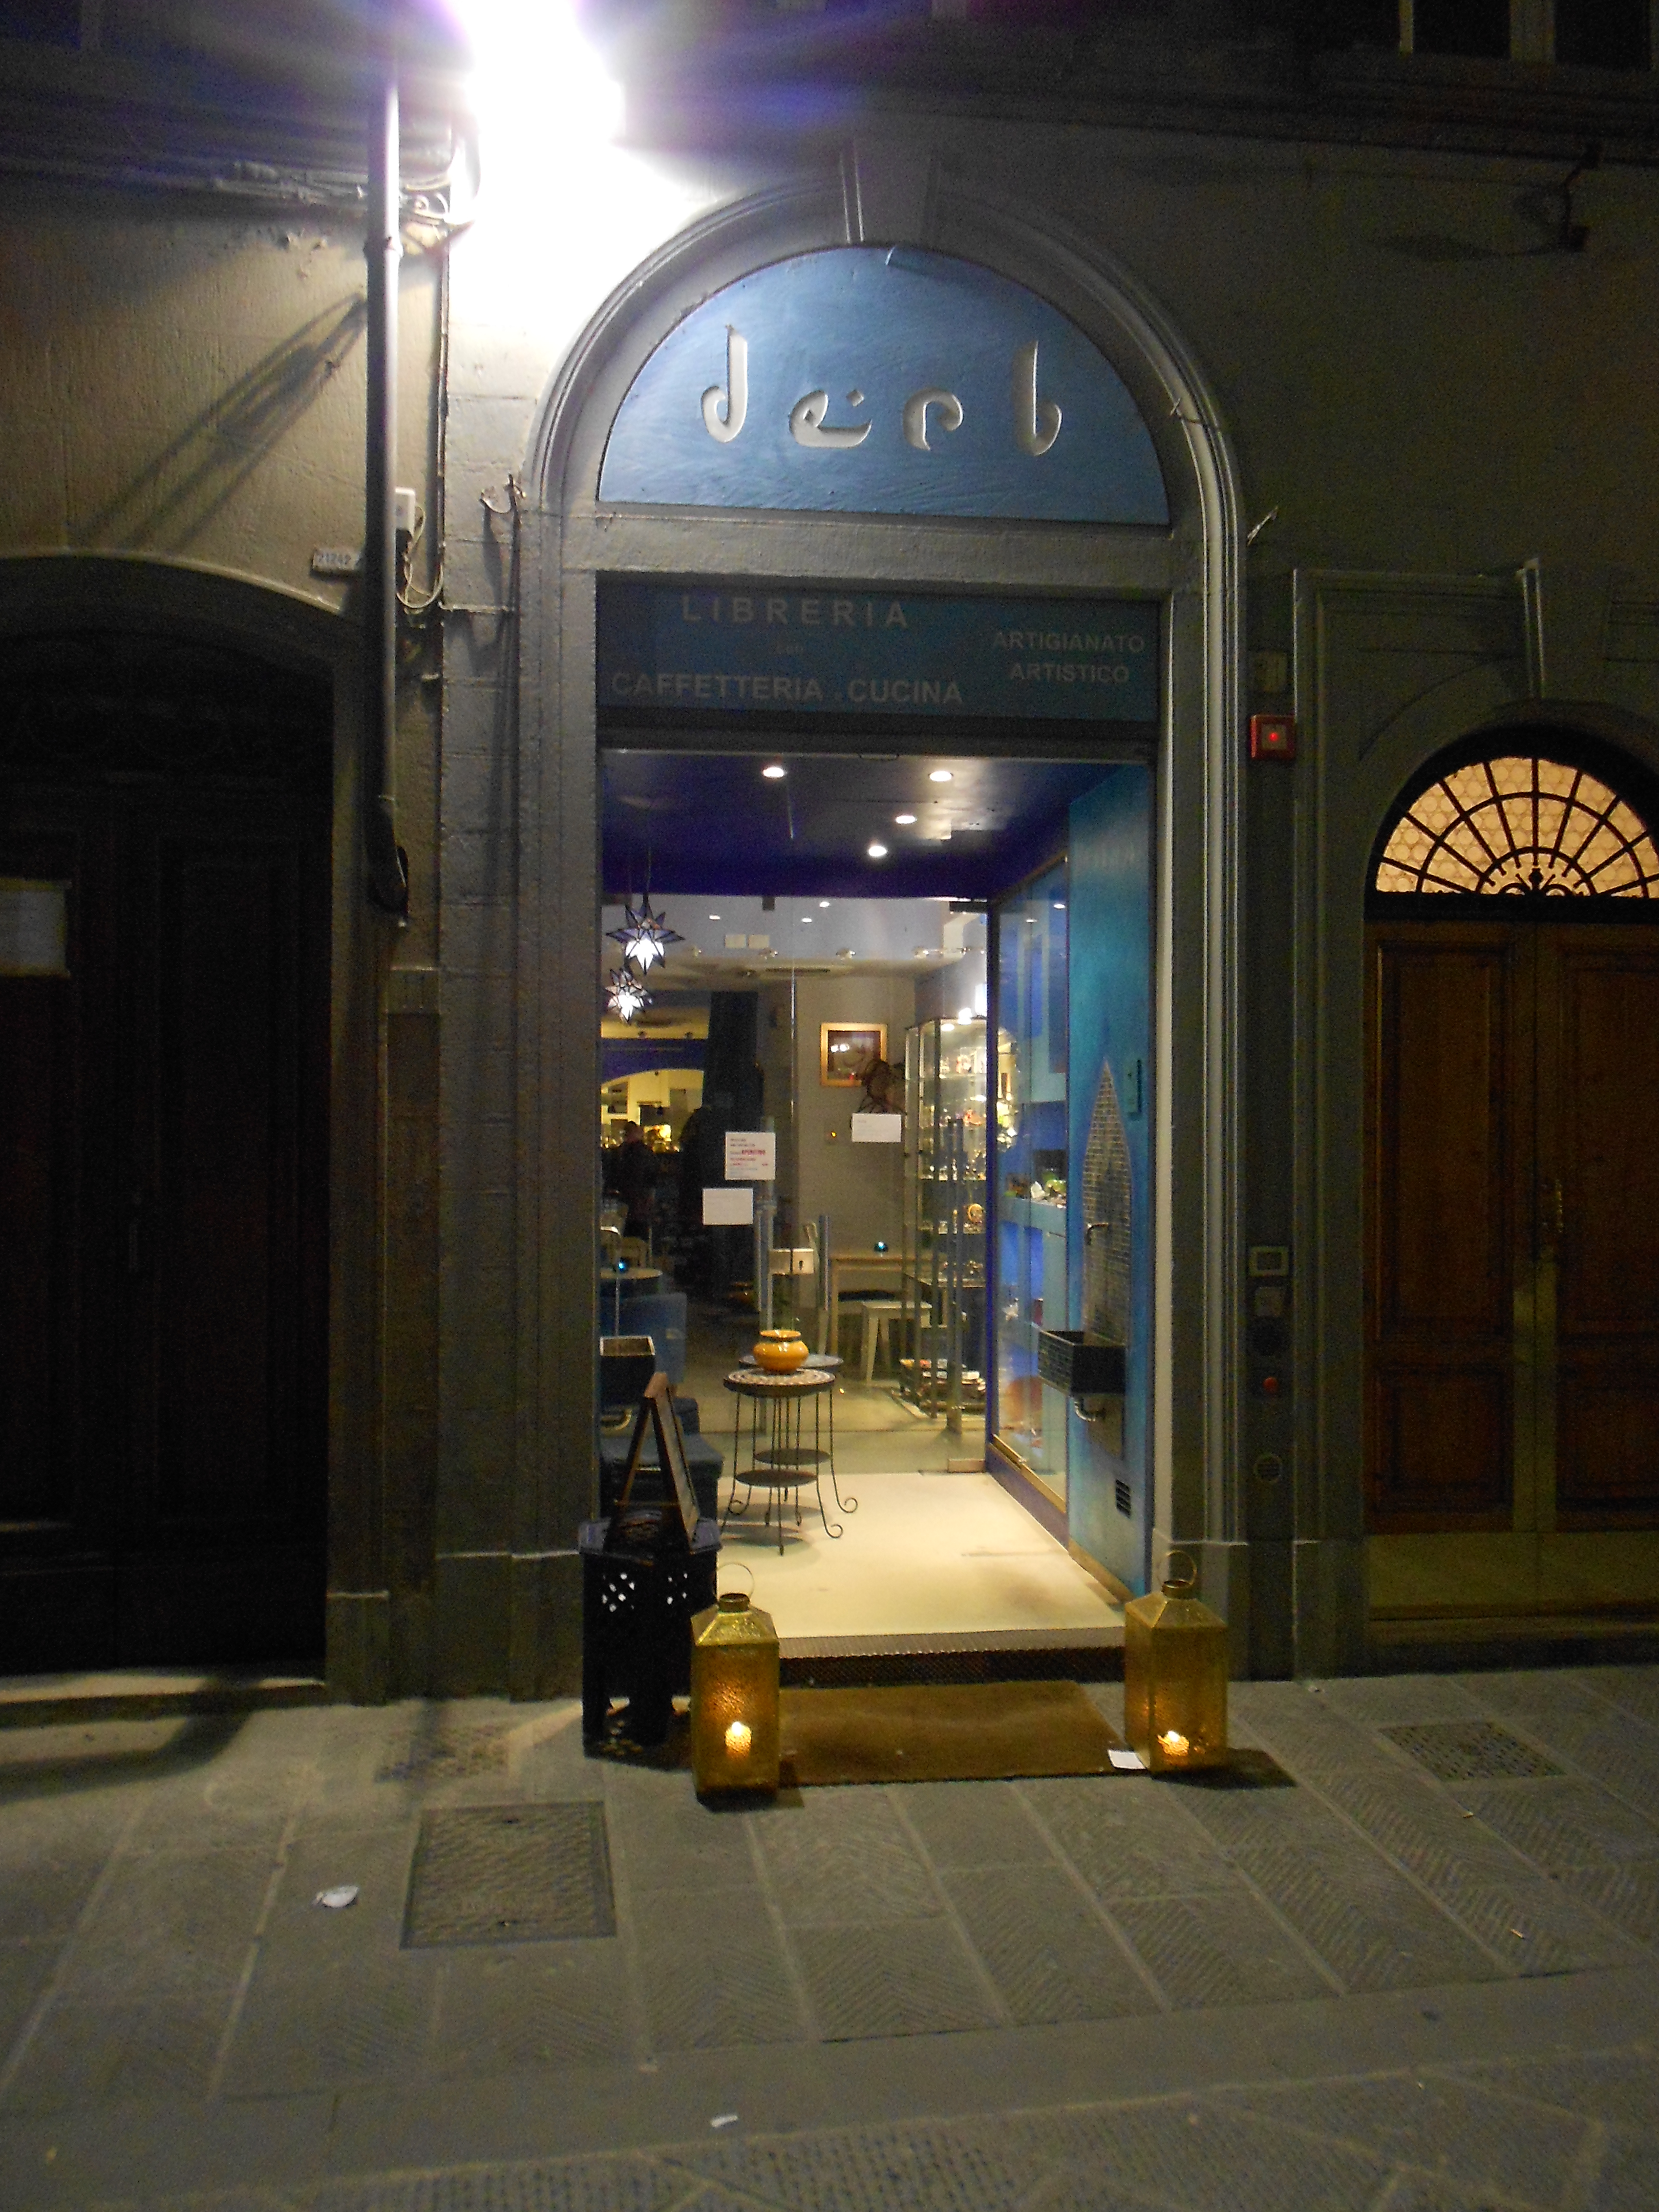 The derb, one of the best spots in Florence to have a good time